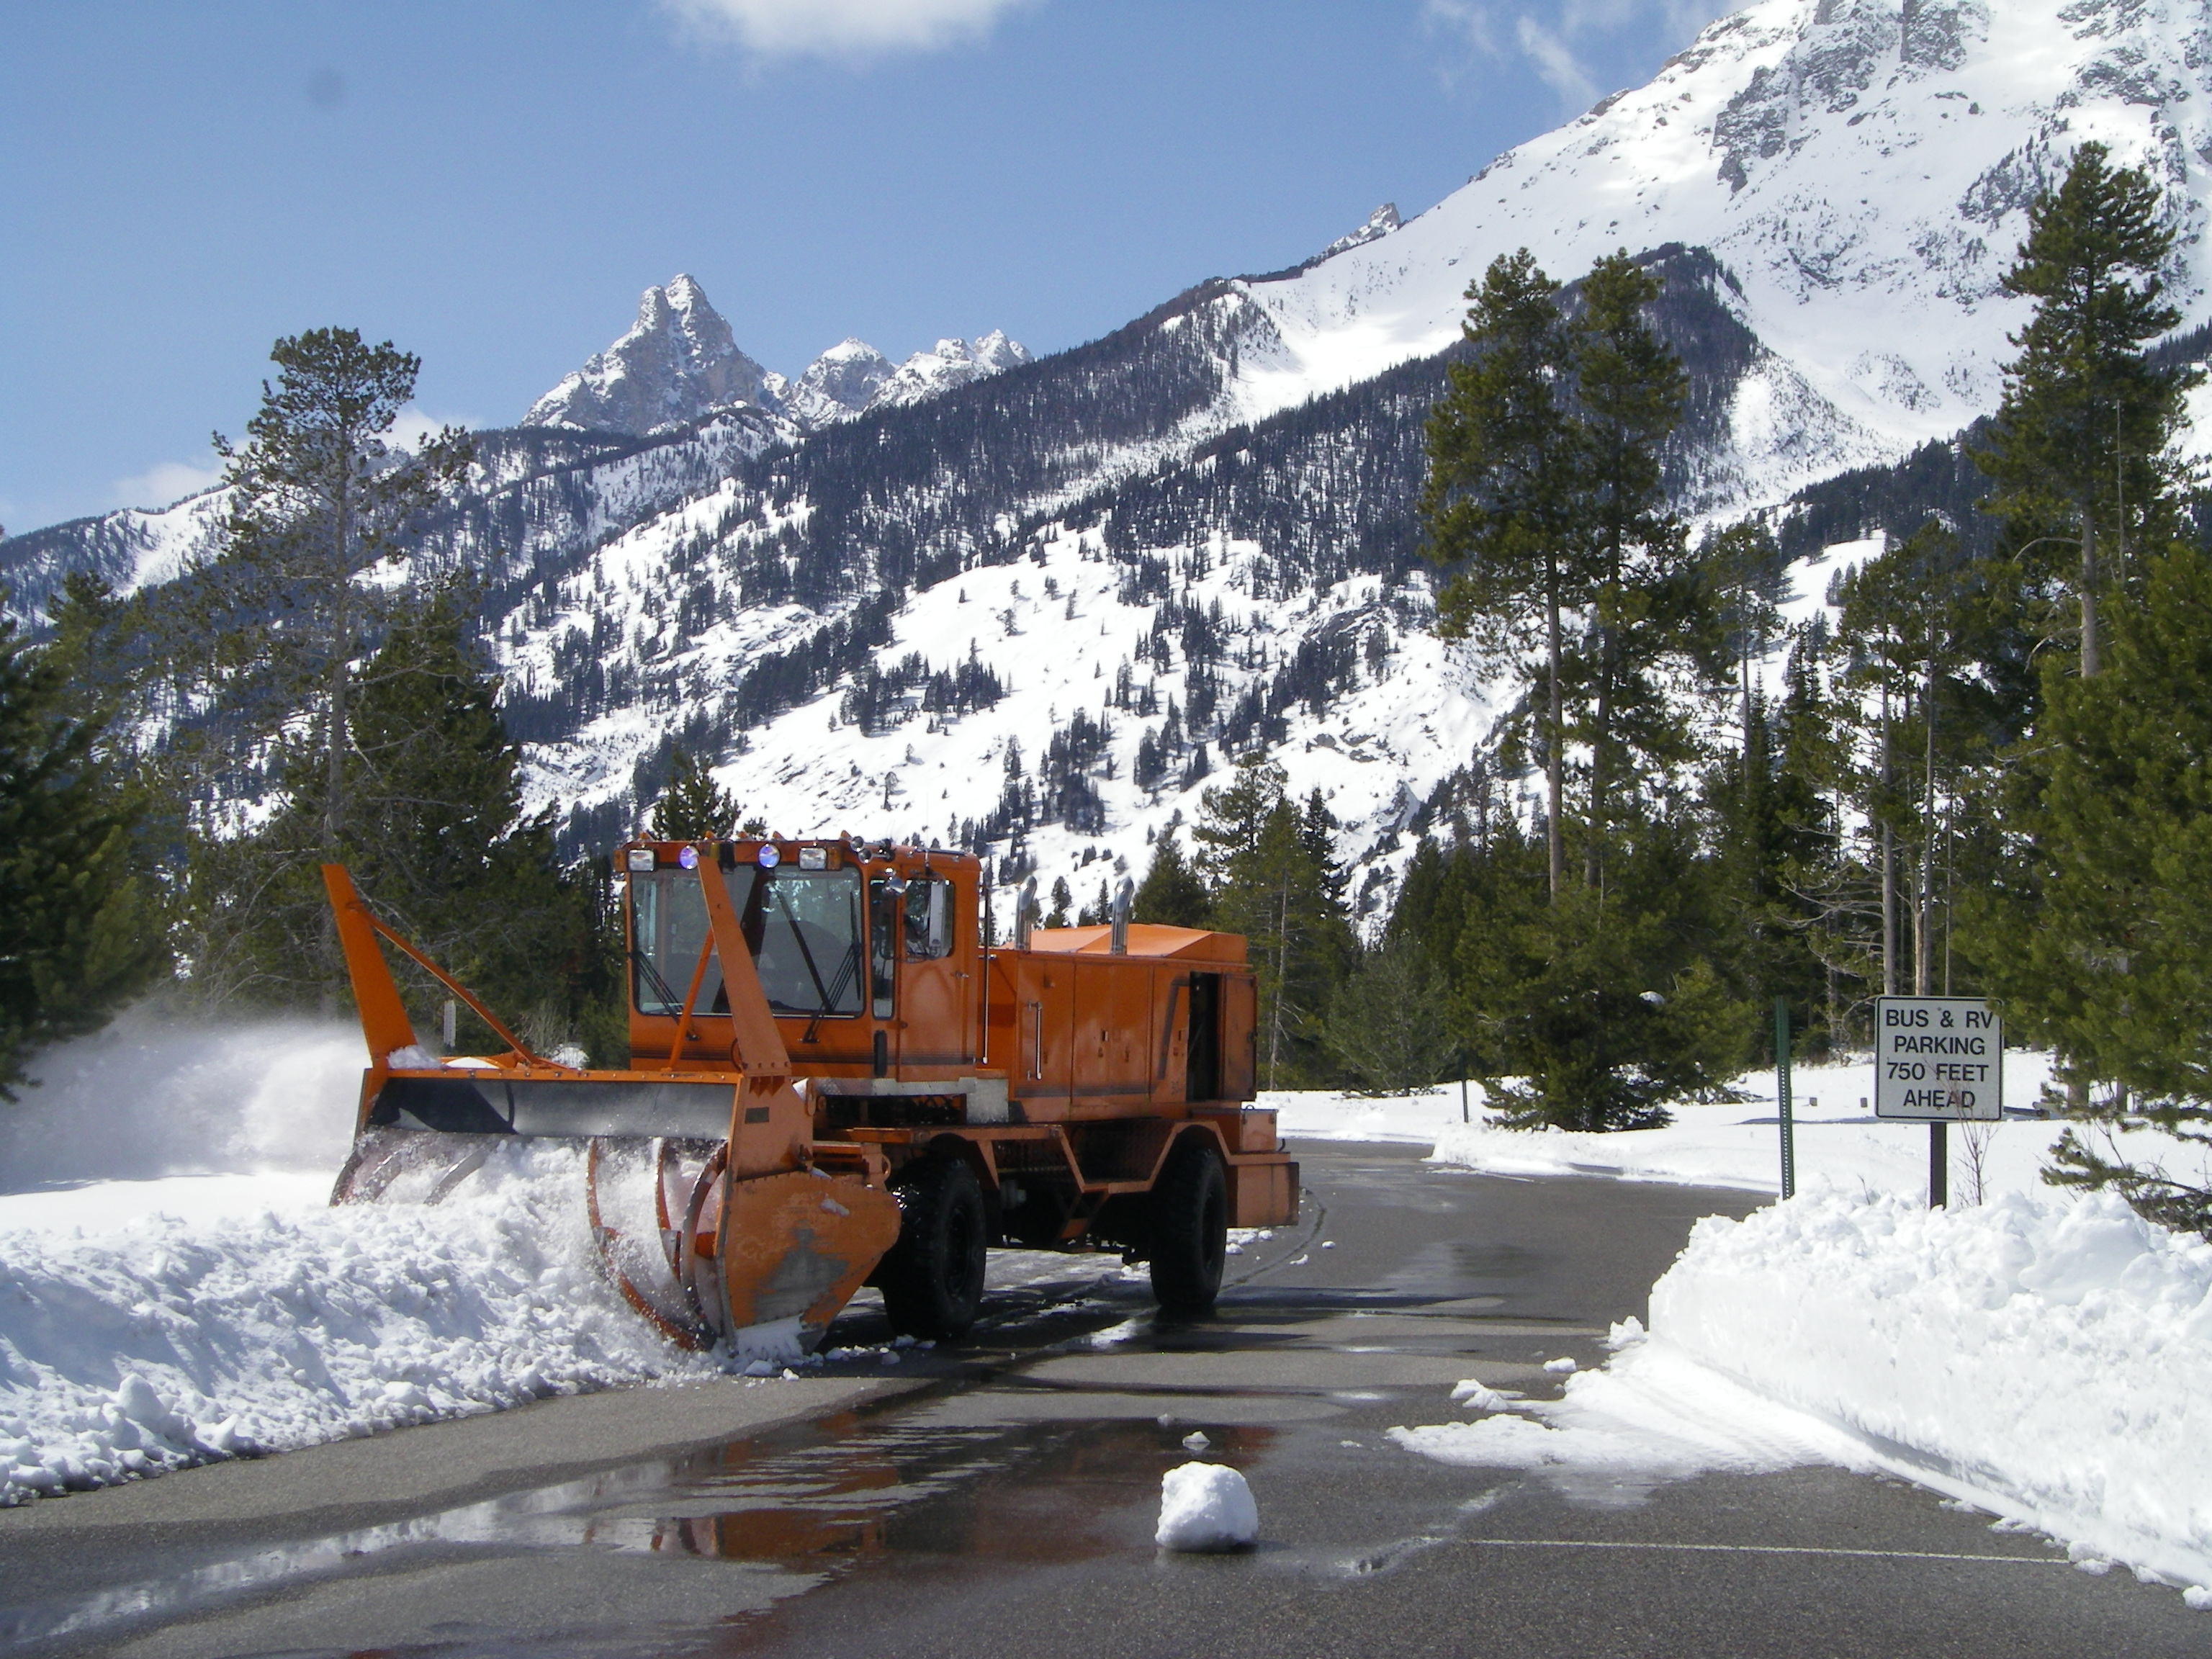 http://www.nps.gov/grte/learn/news/images/Rotary-snow-plow-on-TPR.jpg